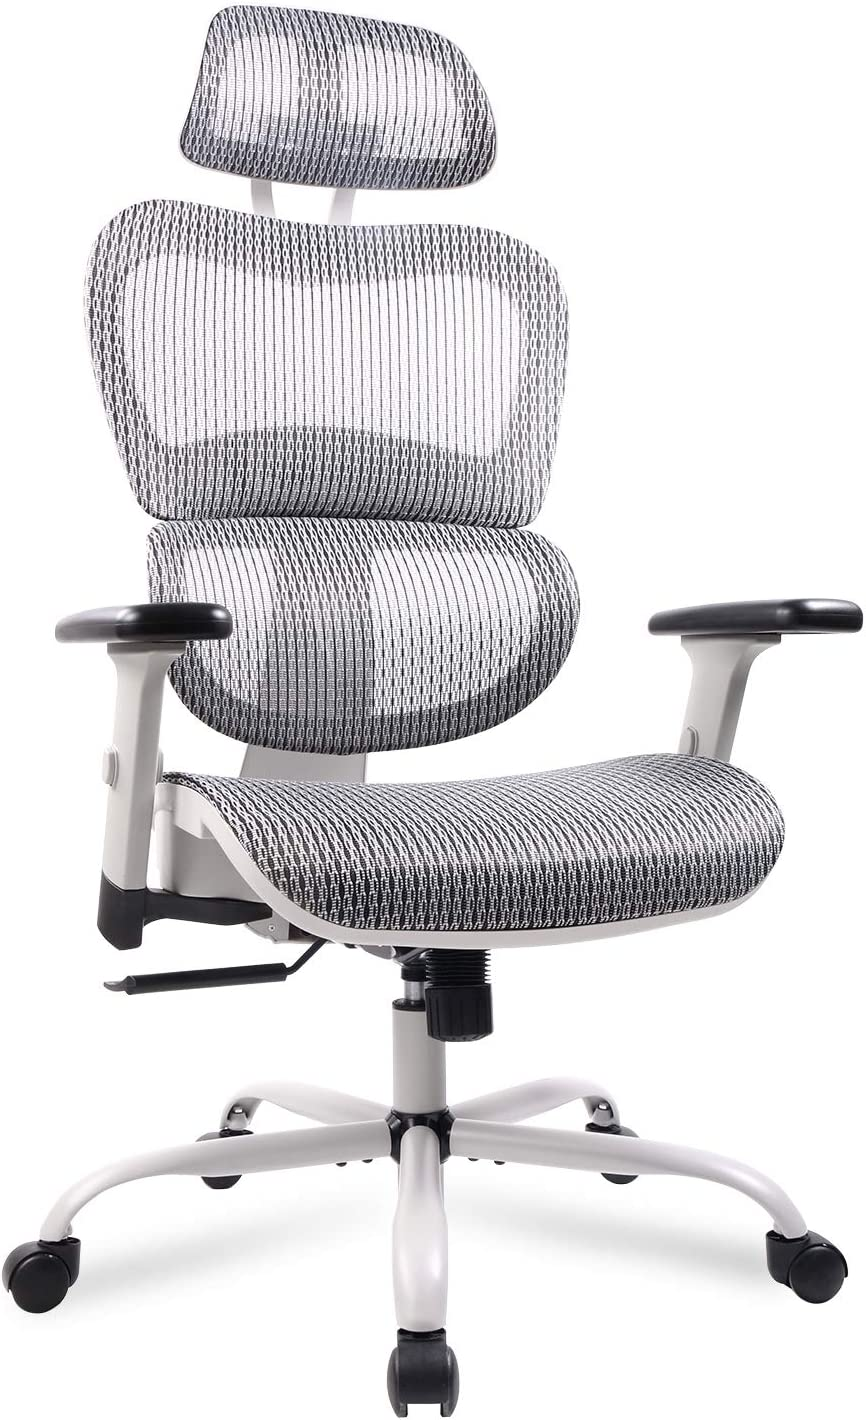 Home Office Chair Mesh Ergonomic Computer Chair with 47D Adjustable Armrests  Desk Chair High Back Technical Task Chair - Grey